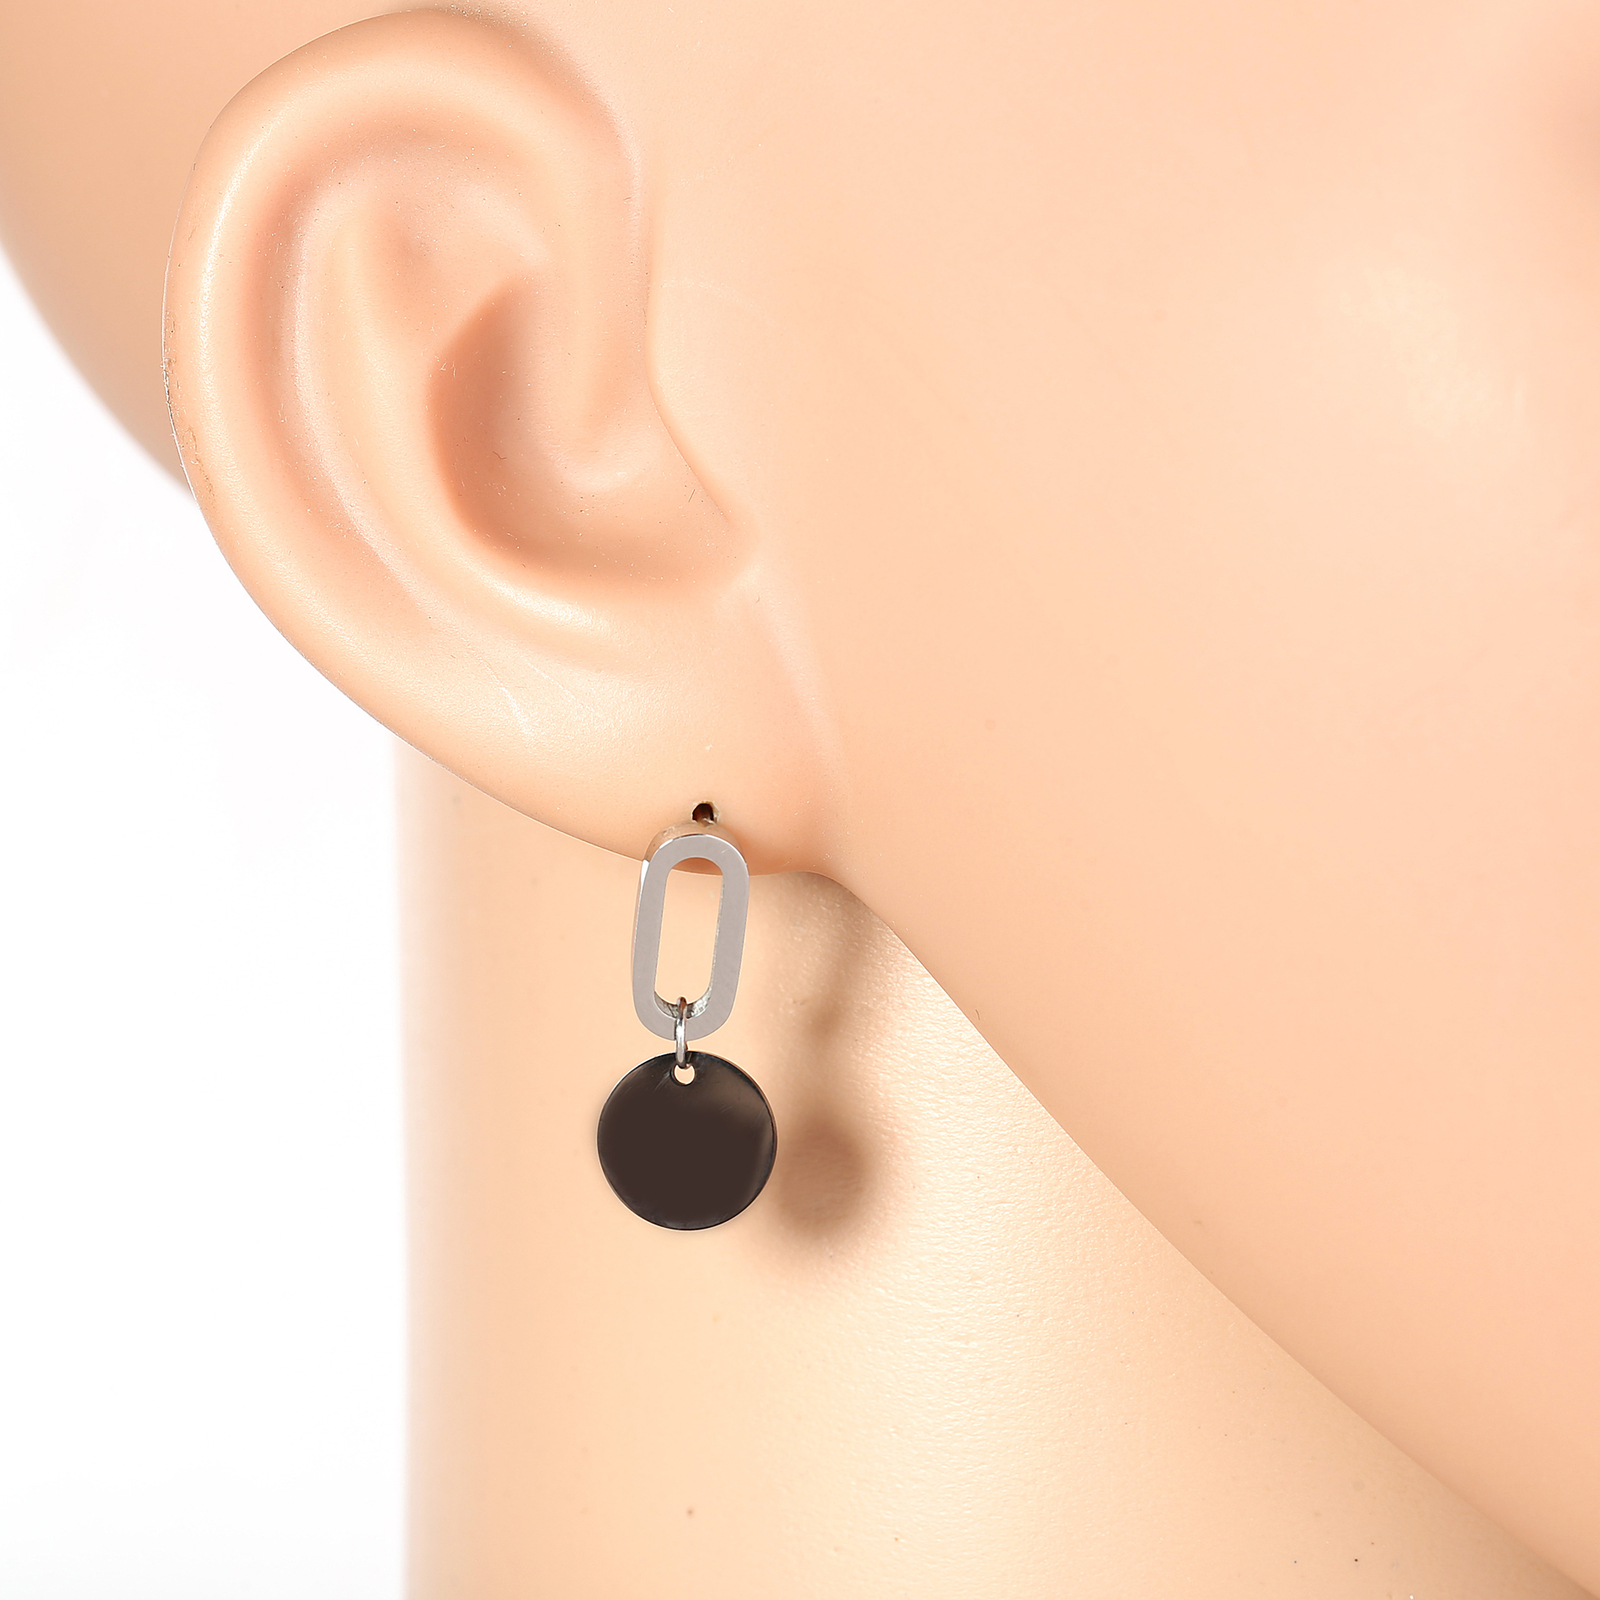 Primary image for Stylish Silver Tone Designer Drop Earrings with Jet Black Gun-Metal Circle